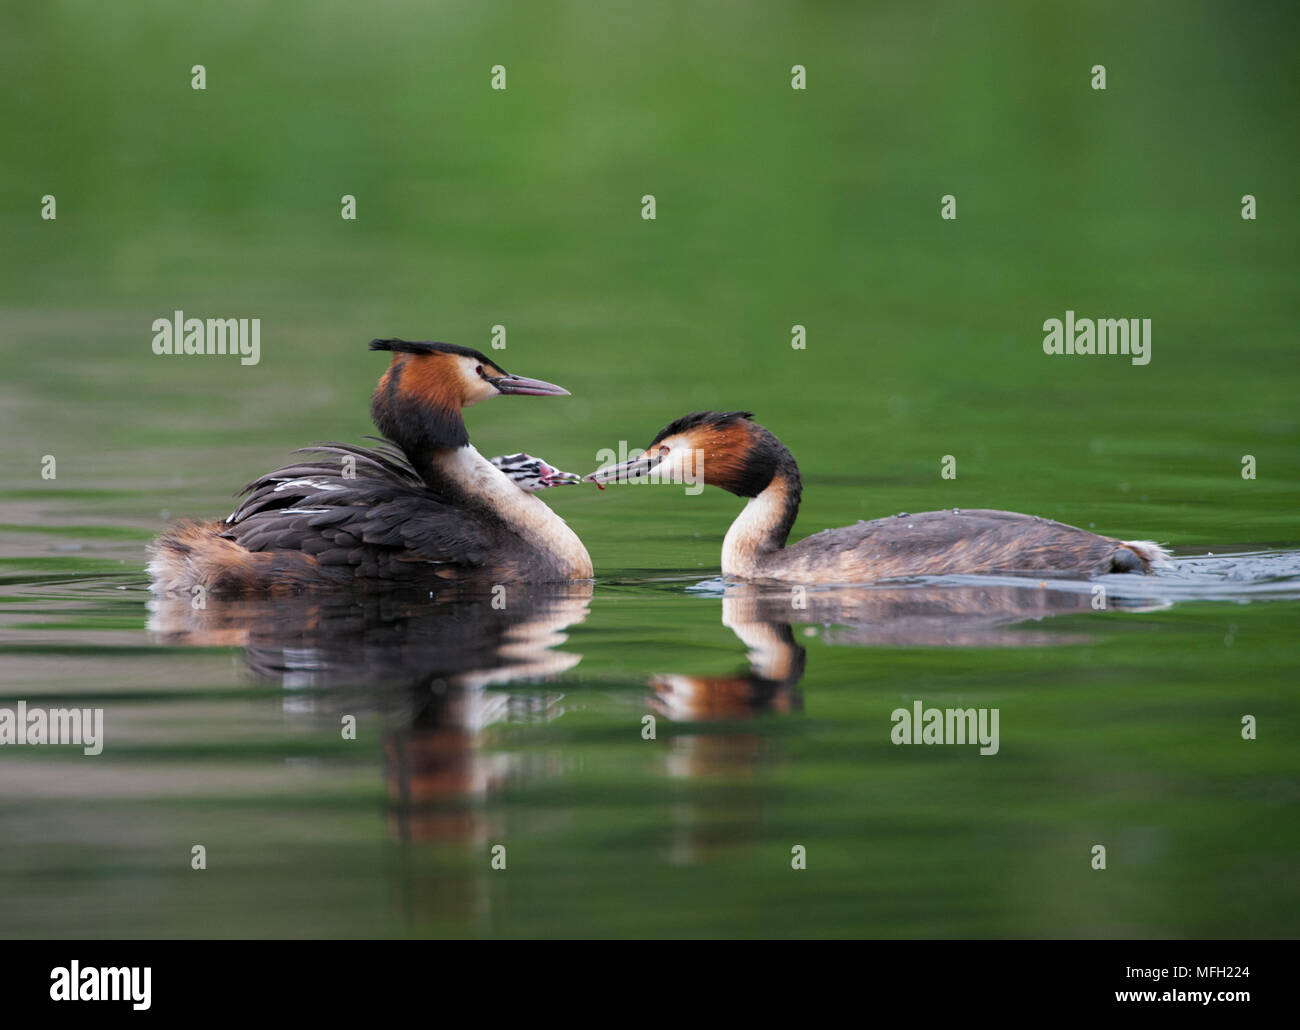 Great Crested Grebe pair, (Podiceps cristatus), feeding chick on back, Regent's Park, London, United Kingdom, British Isles - Stock Image